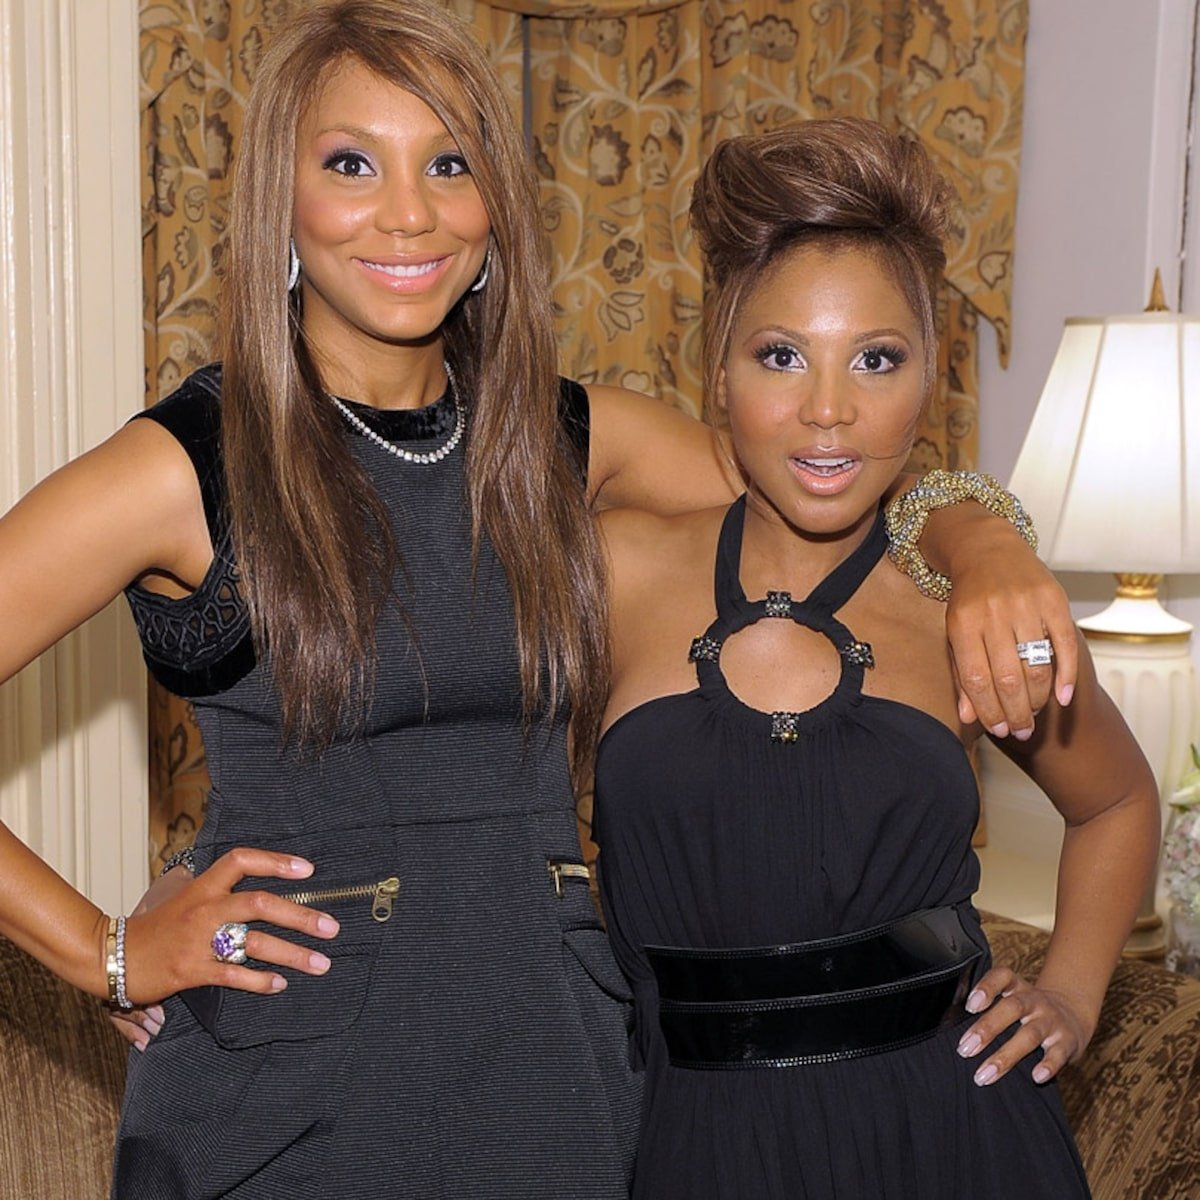 Toni Braxton Wishes A Happy Birthday To Her Little Sister, Tamar Braxton